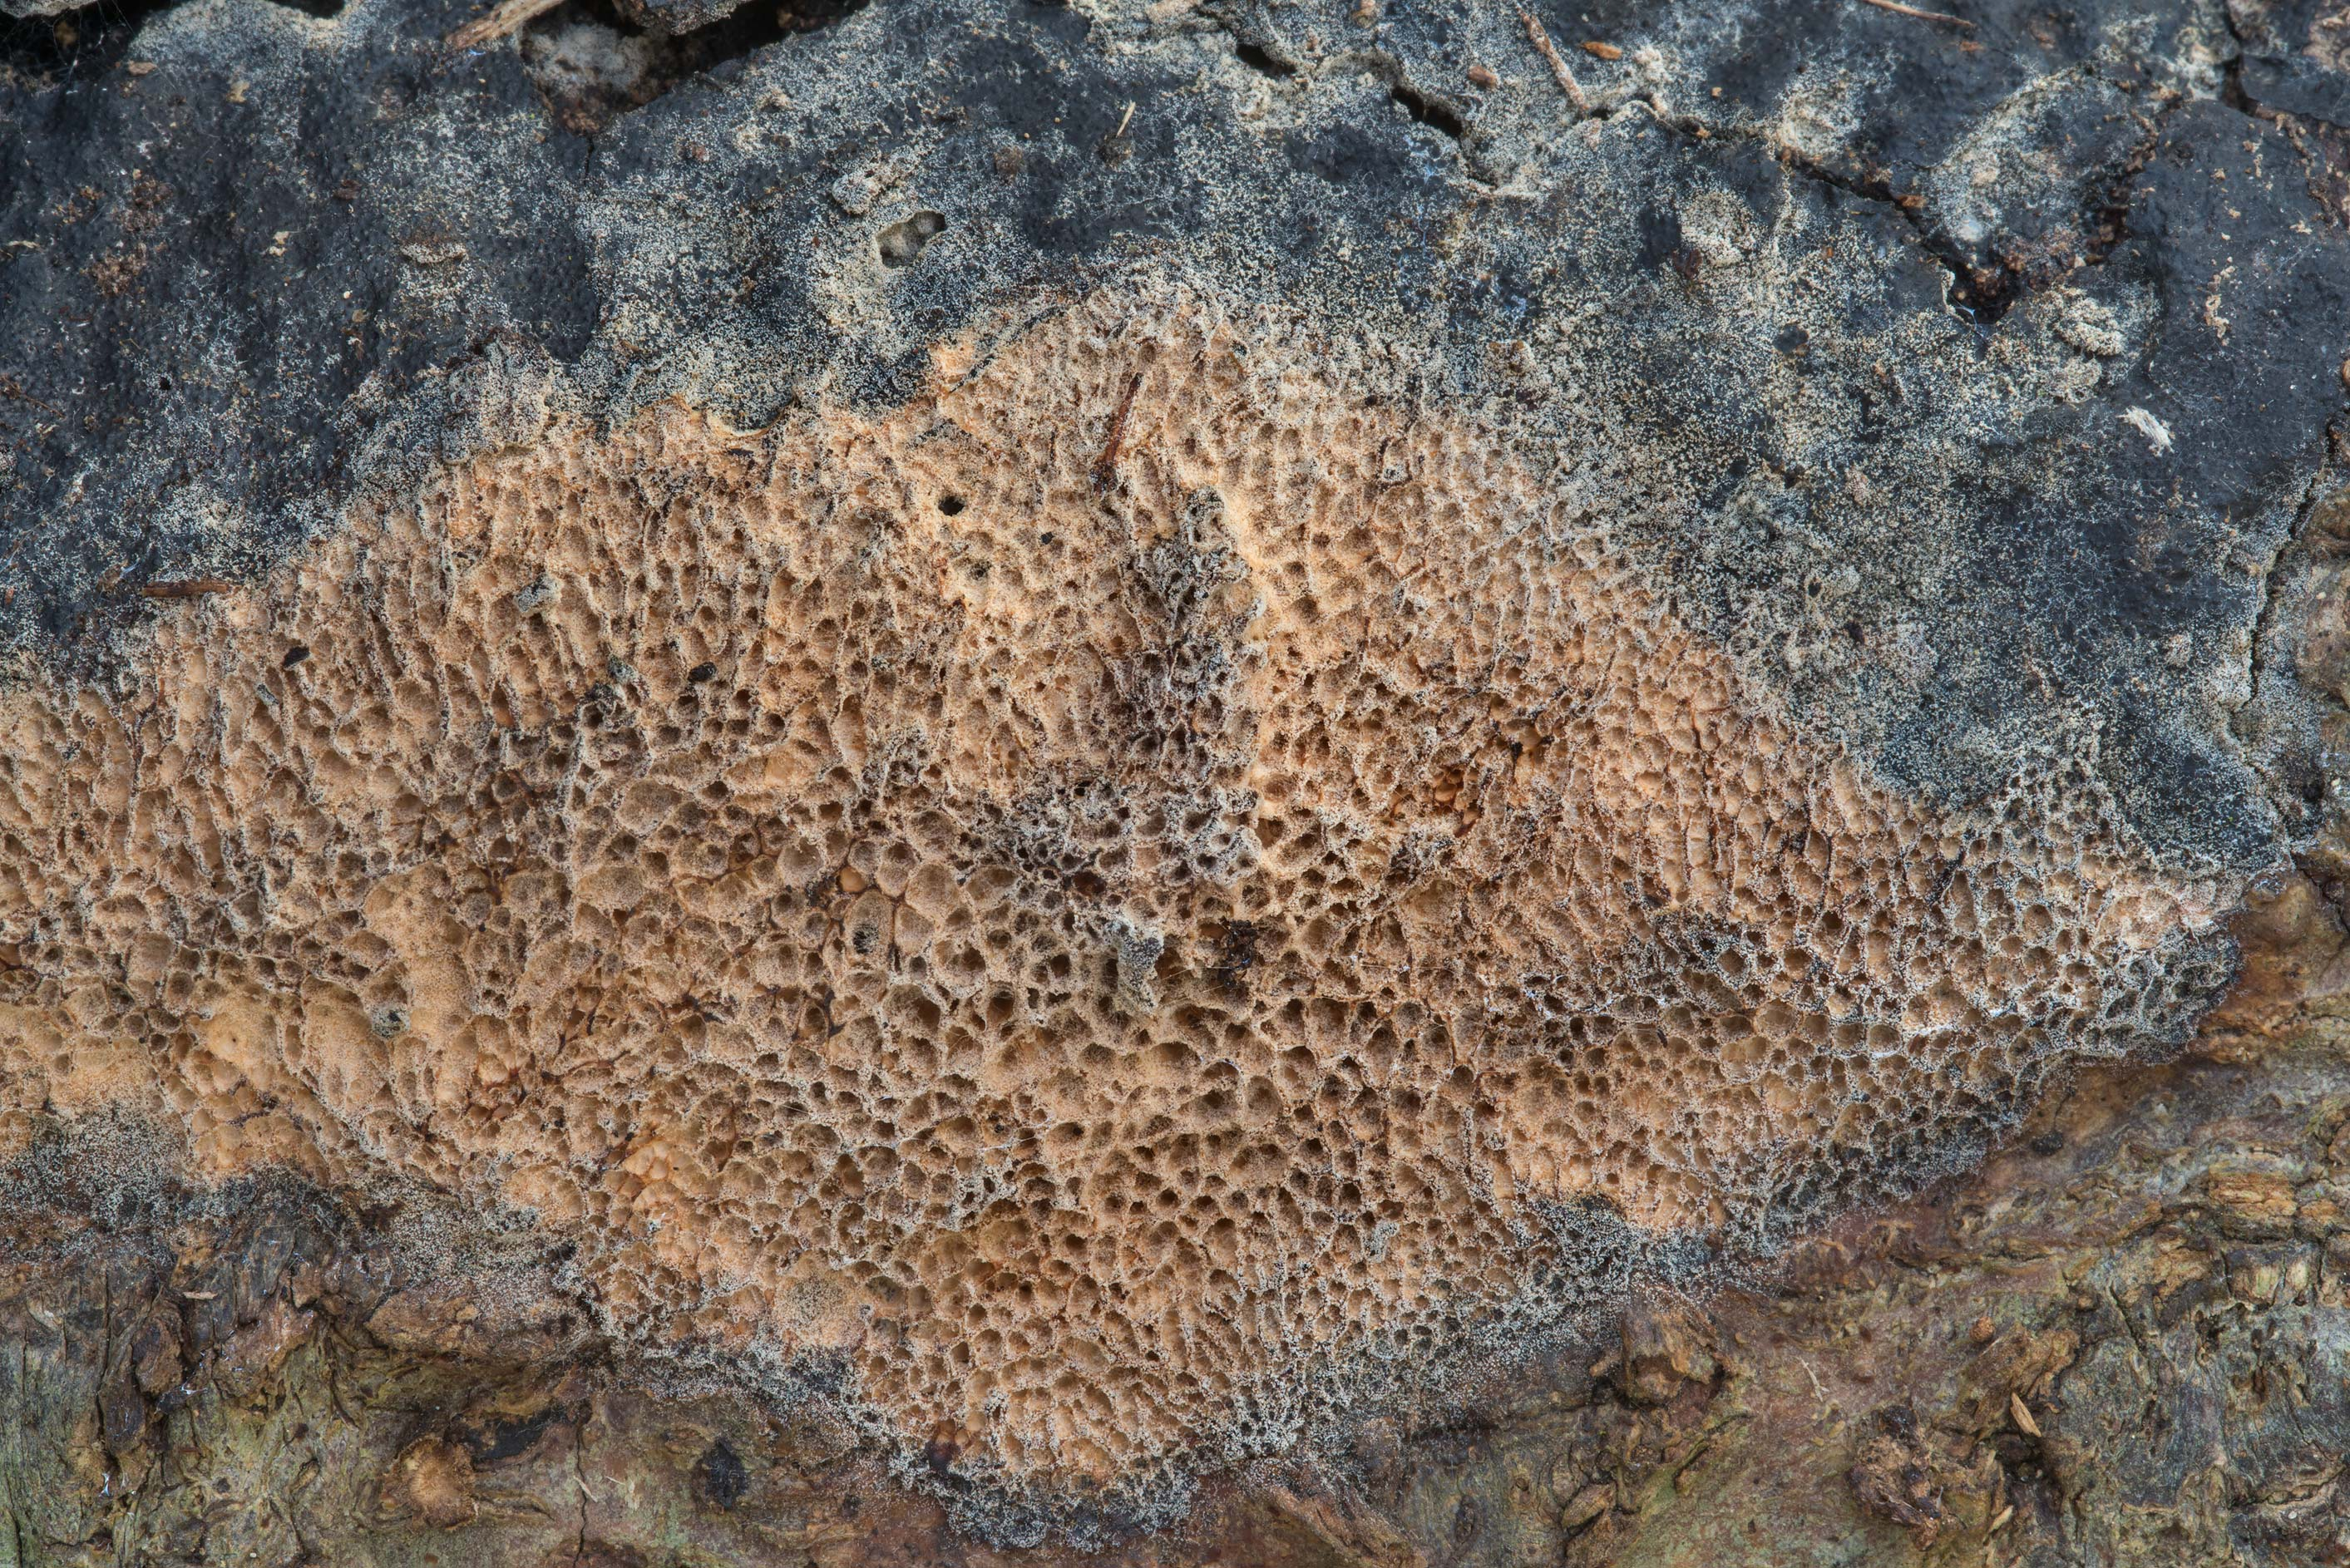 Some porous crust fungus in Bee Creek Park. College Station, Texas